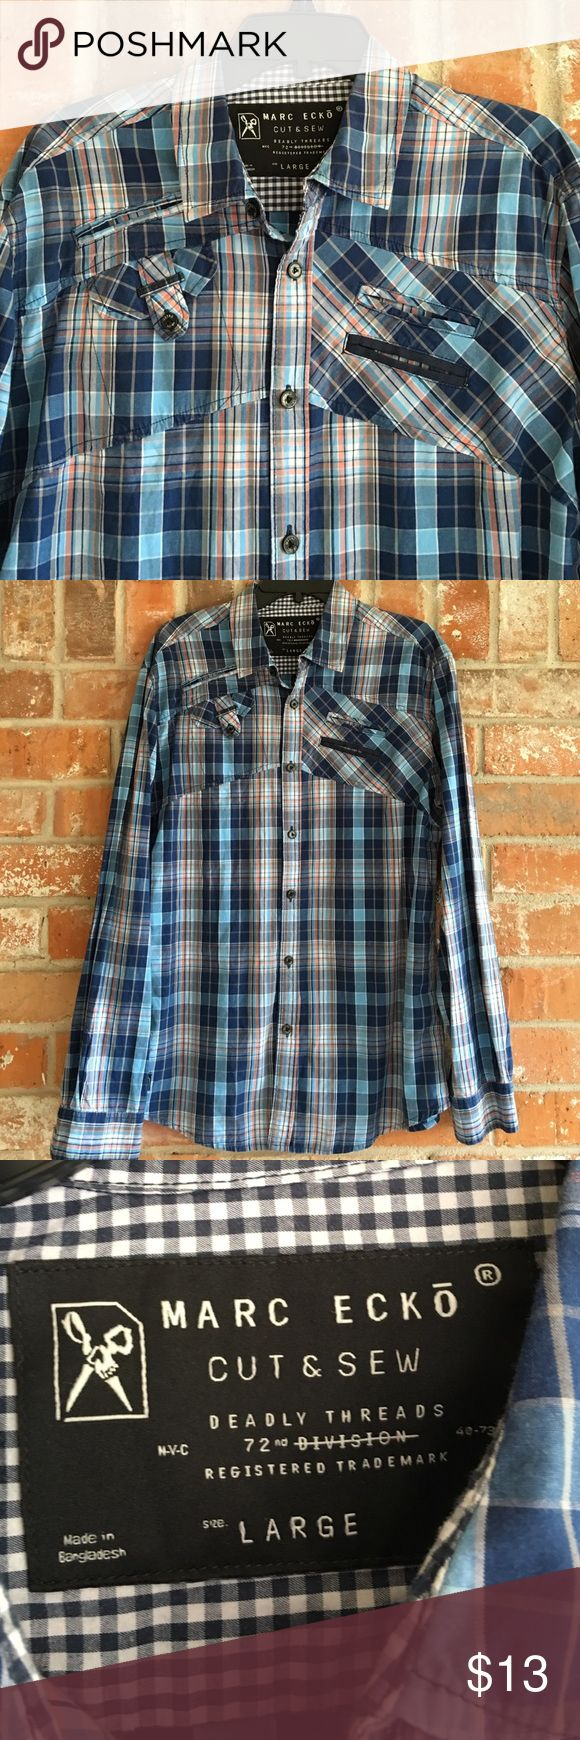 Men's Plaid Shirt By Marc Ecko This shirt is so nice and in EUC. If you need measurements just ask. Marc Ecko Shirts Casual Button Down Shirts